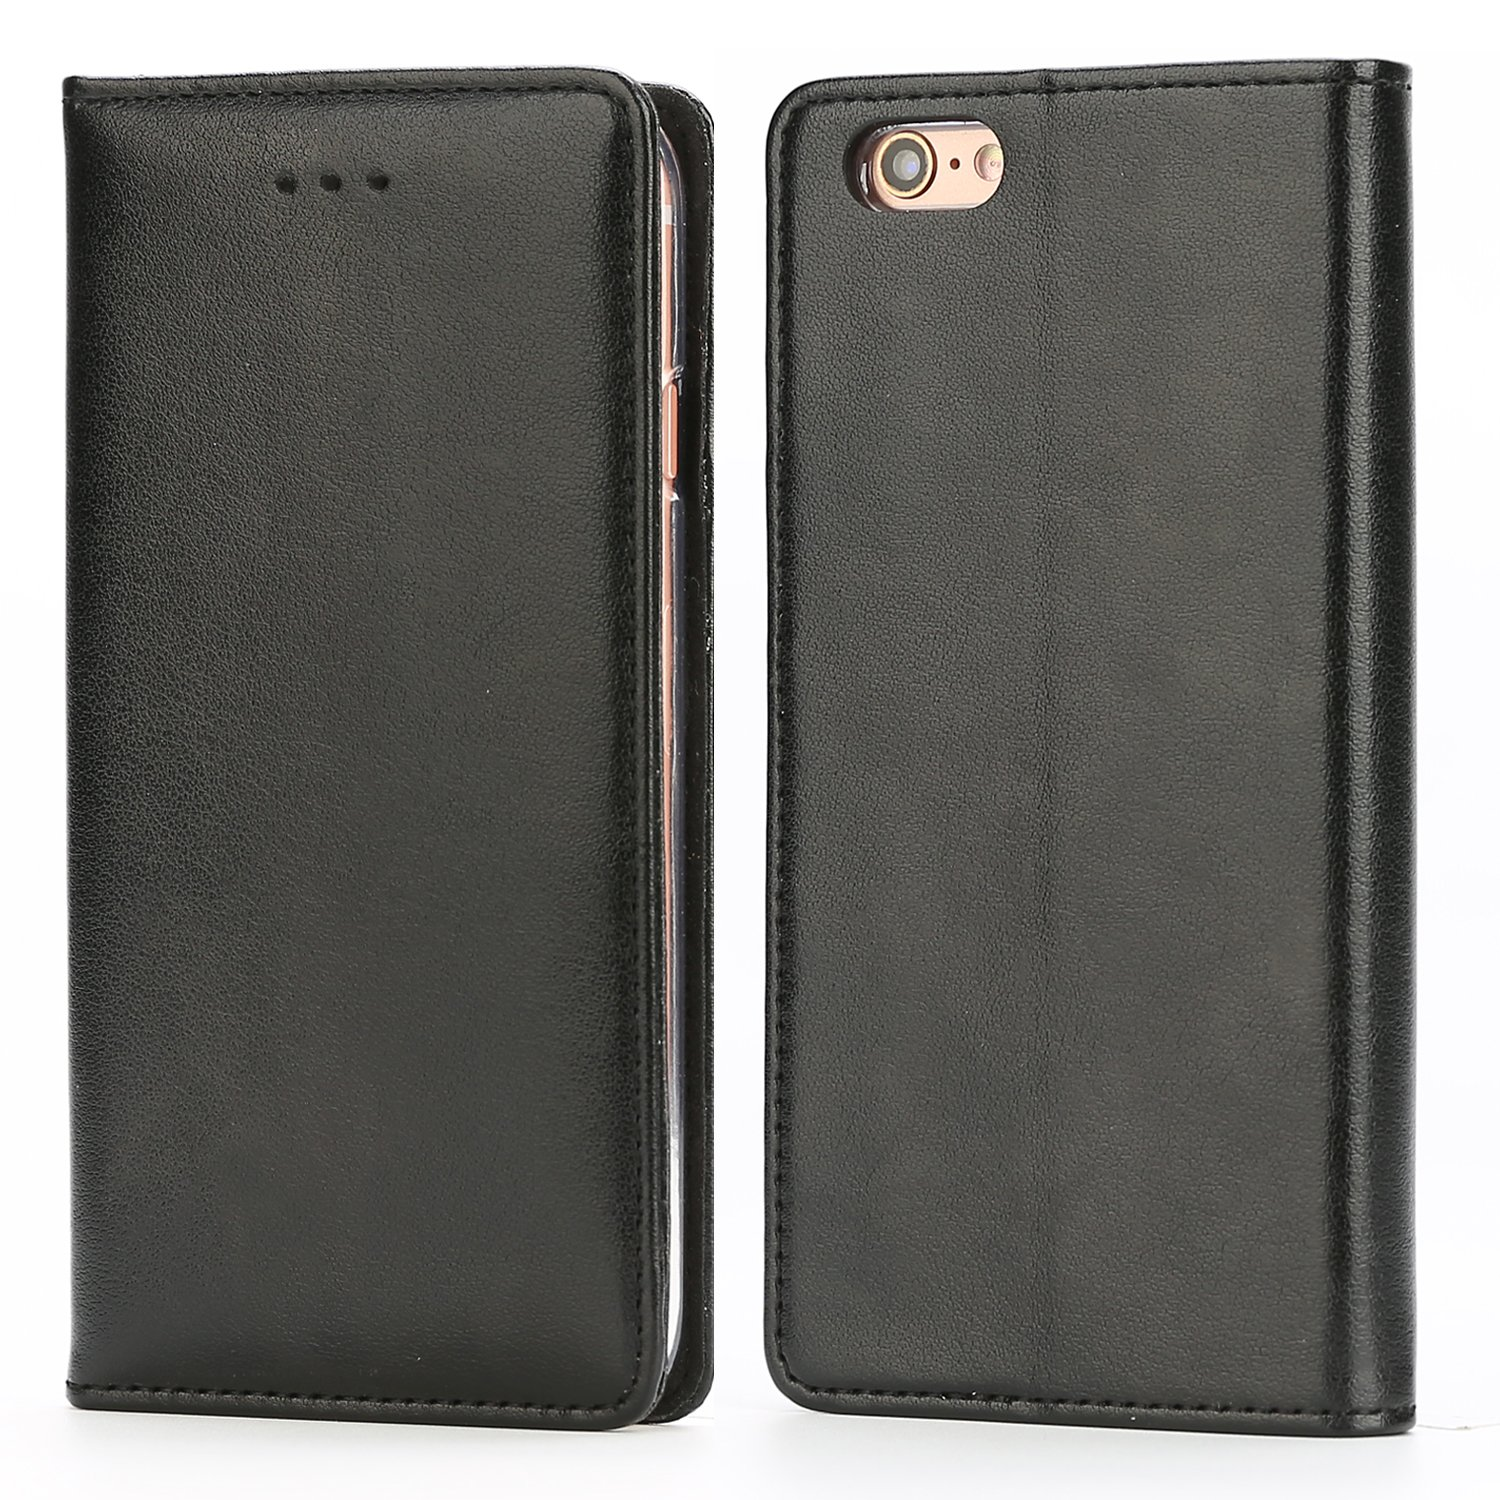 case 1 plus size wave If you like thin samsung galaxy s8 plus cases and minimal design than the galaxy s8 mnml slim case is the case for you this case is just 035mm thin, yes that is not a typo, it's that thin.